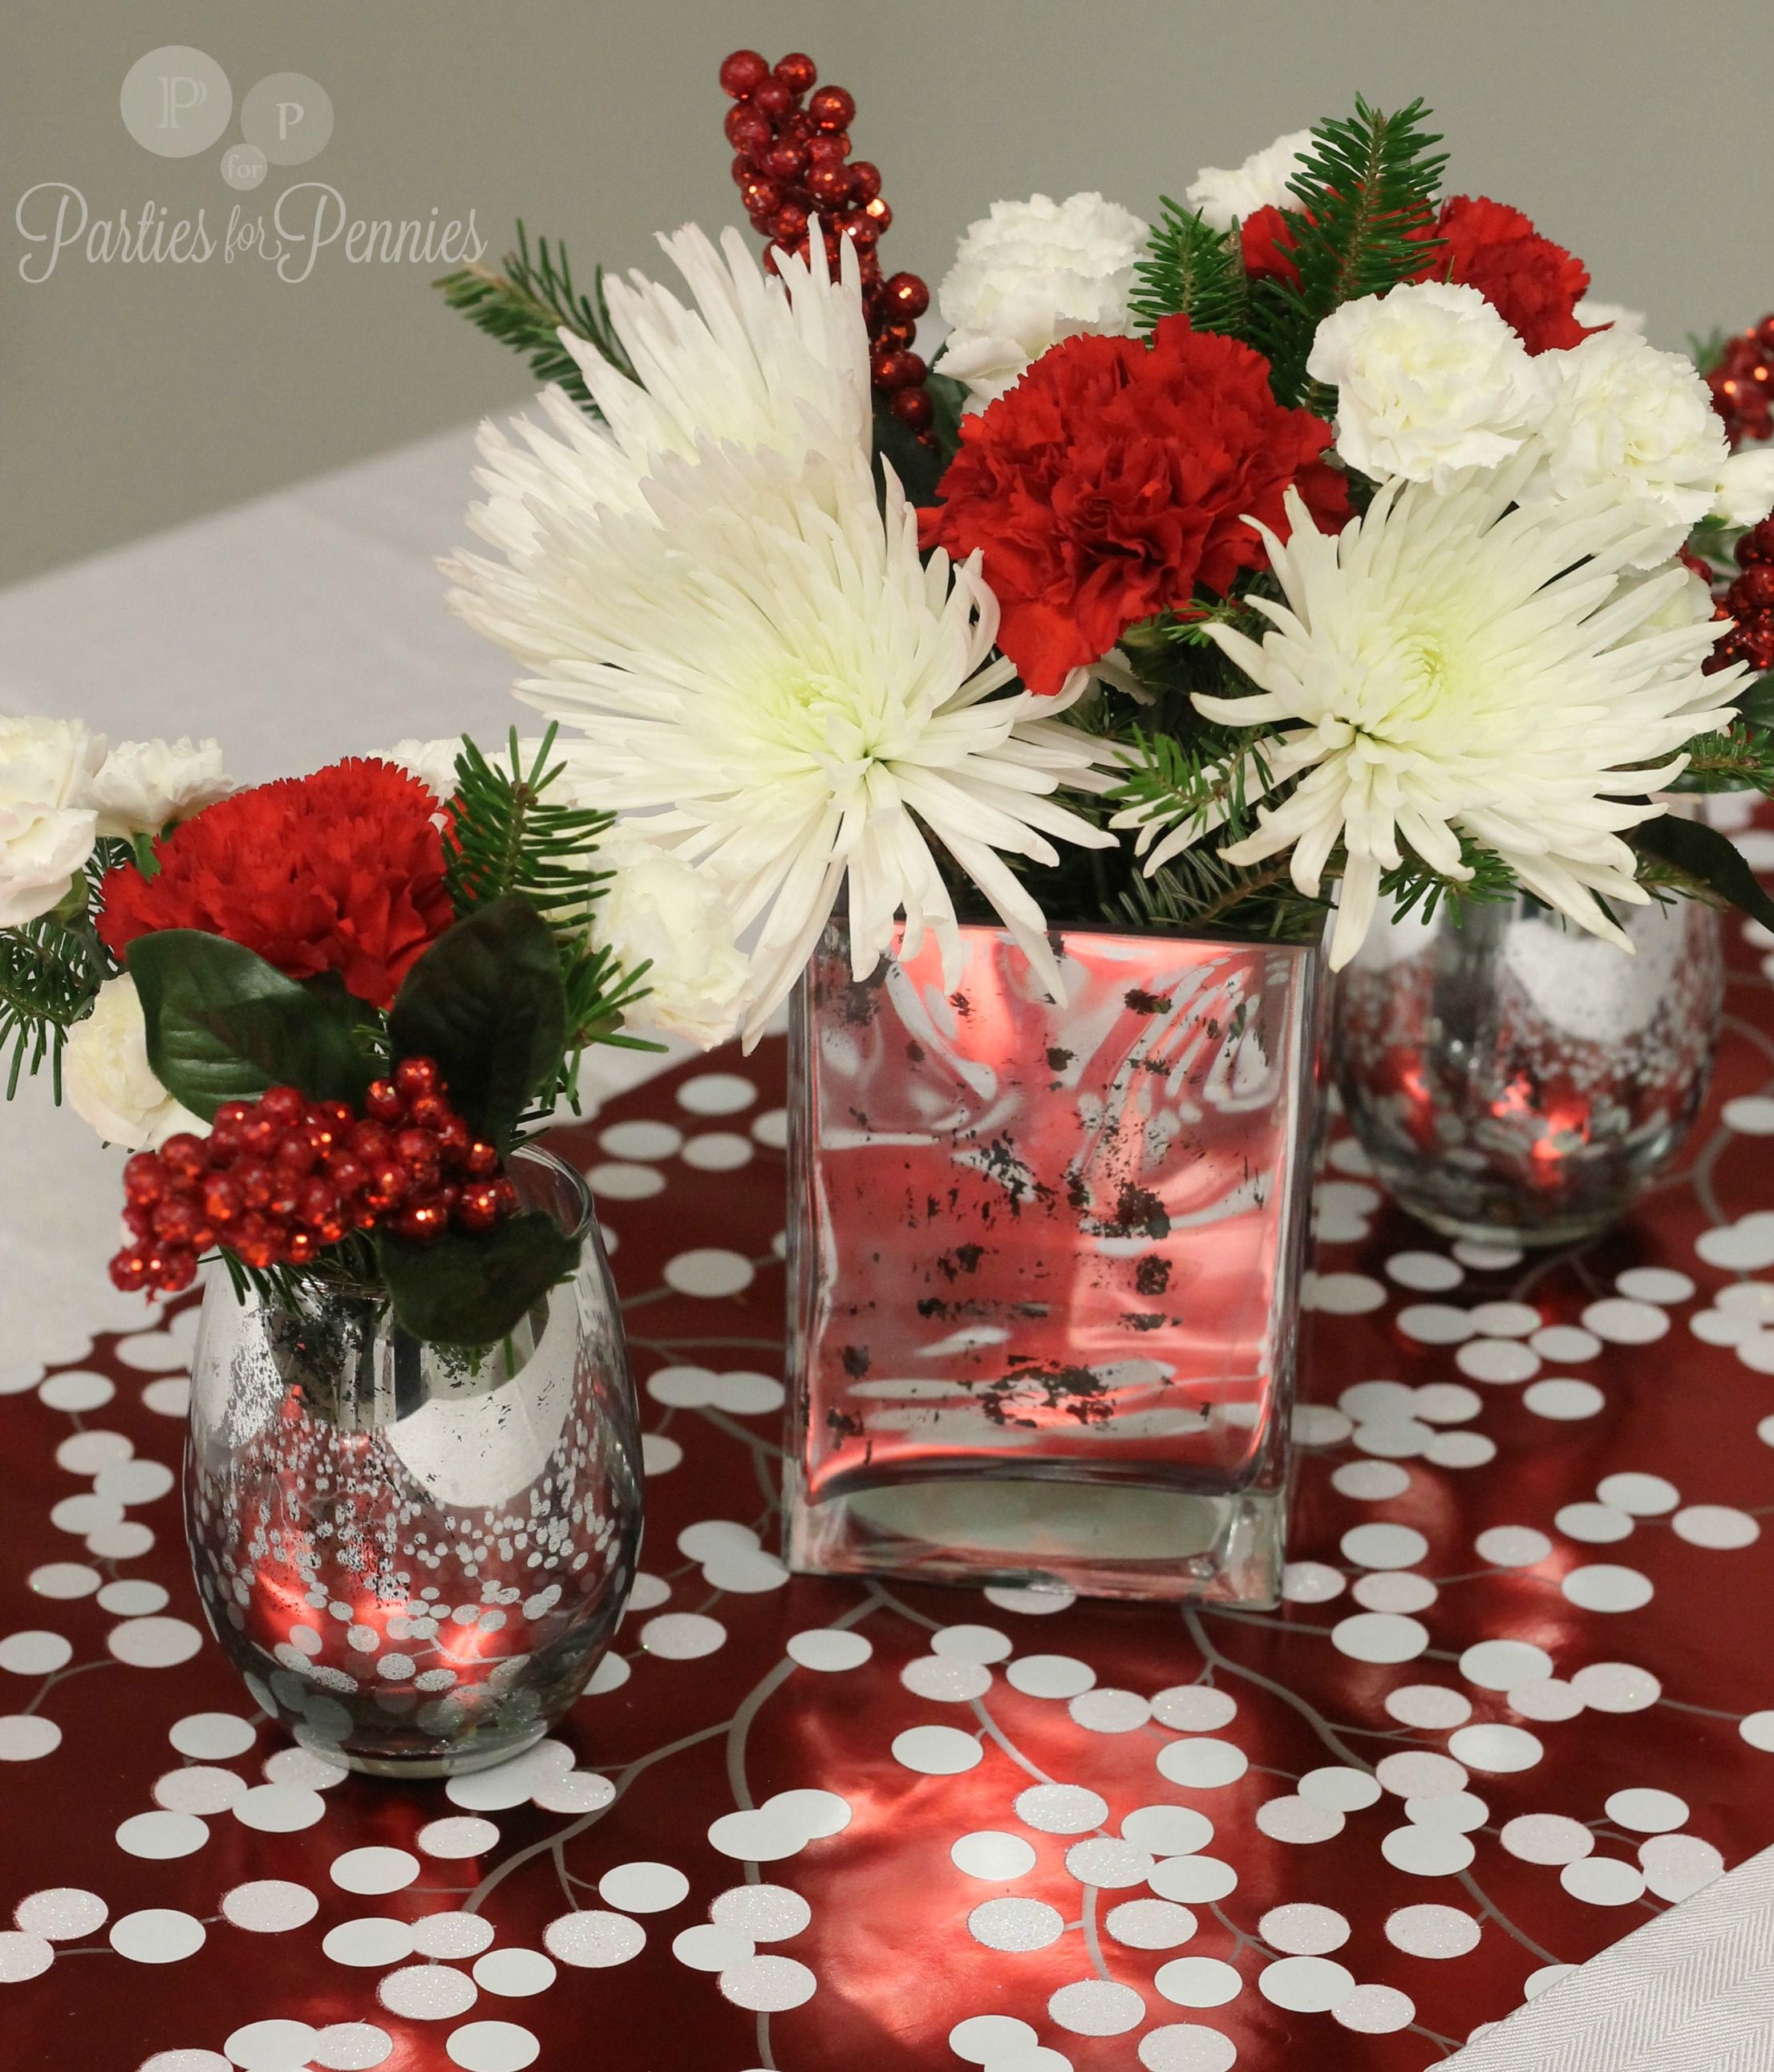 Christmas party centerpiece ideas wallpaper